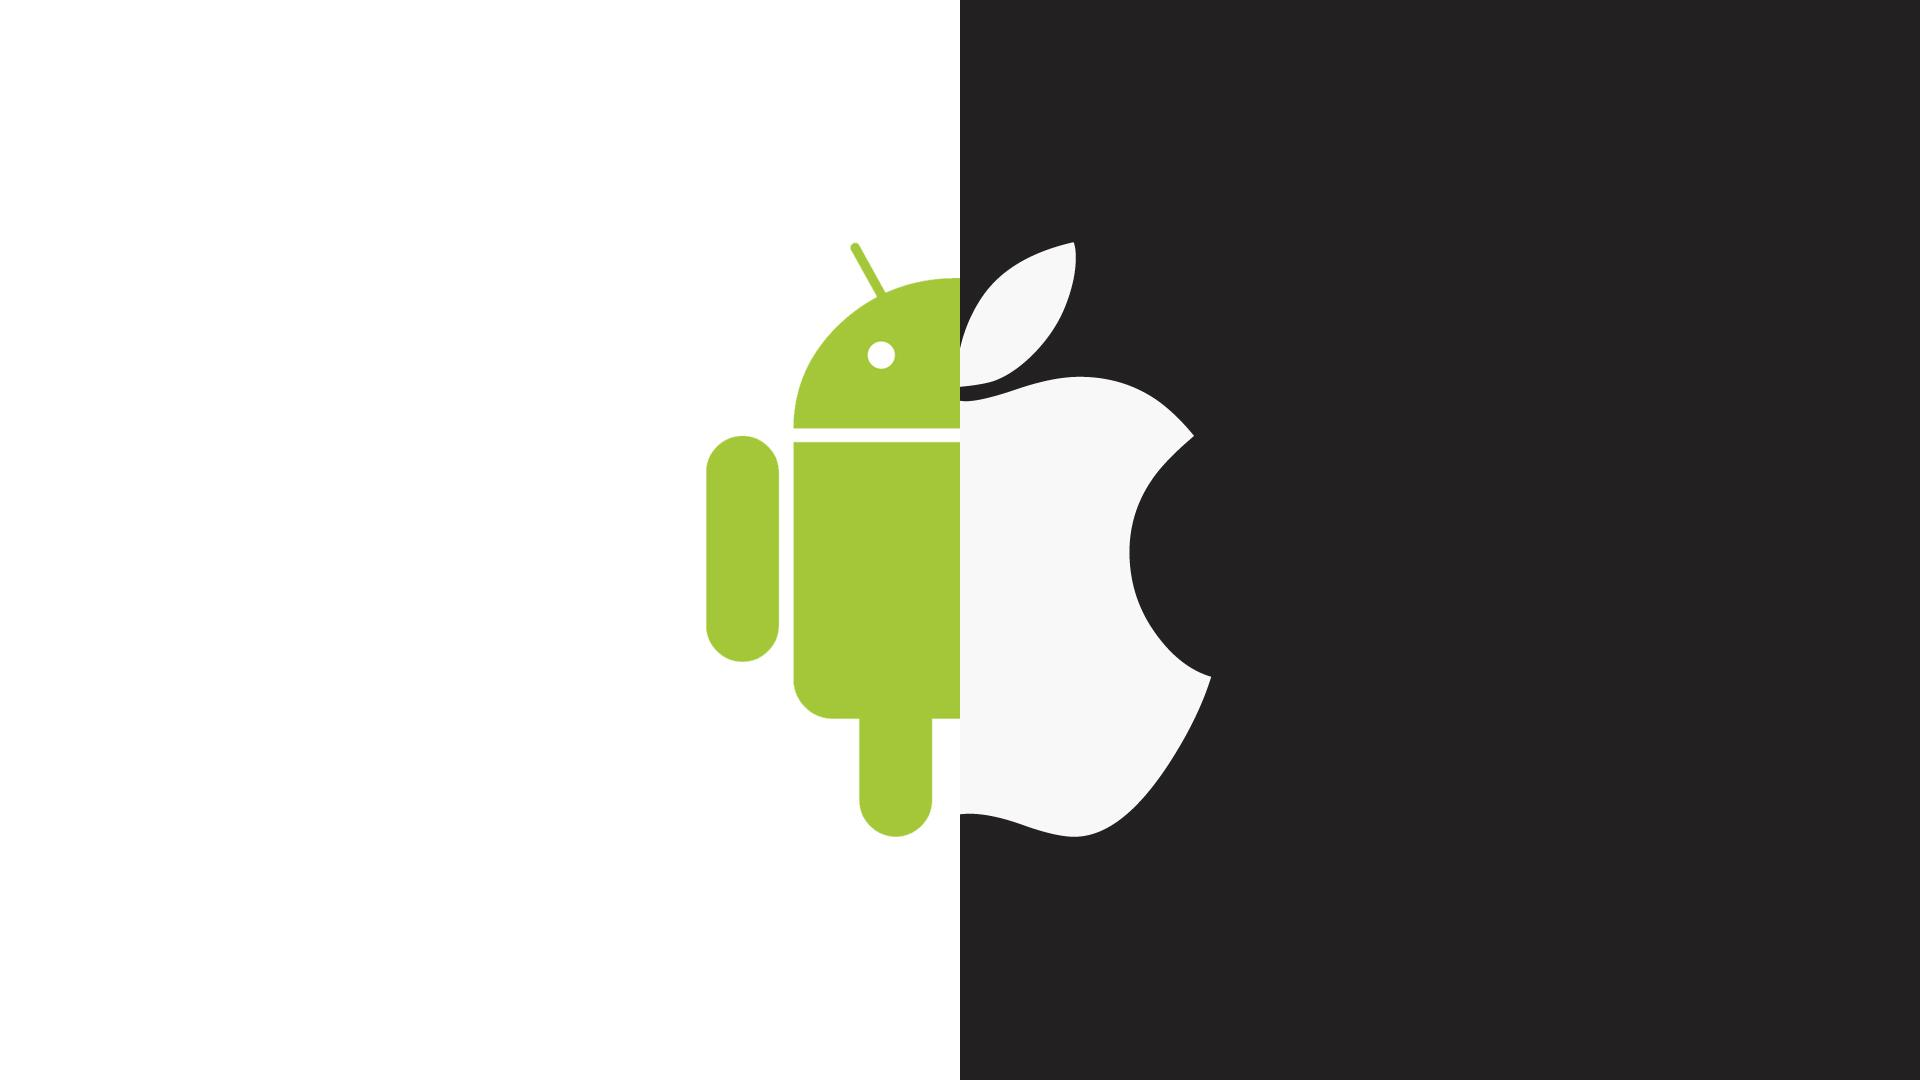 Should You Develop for iOS or Android (or Both)? - iPhone 4S